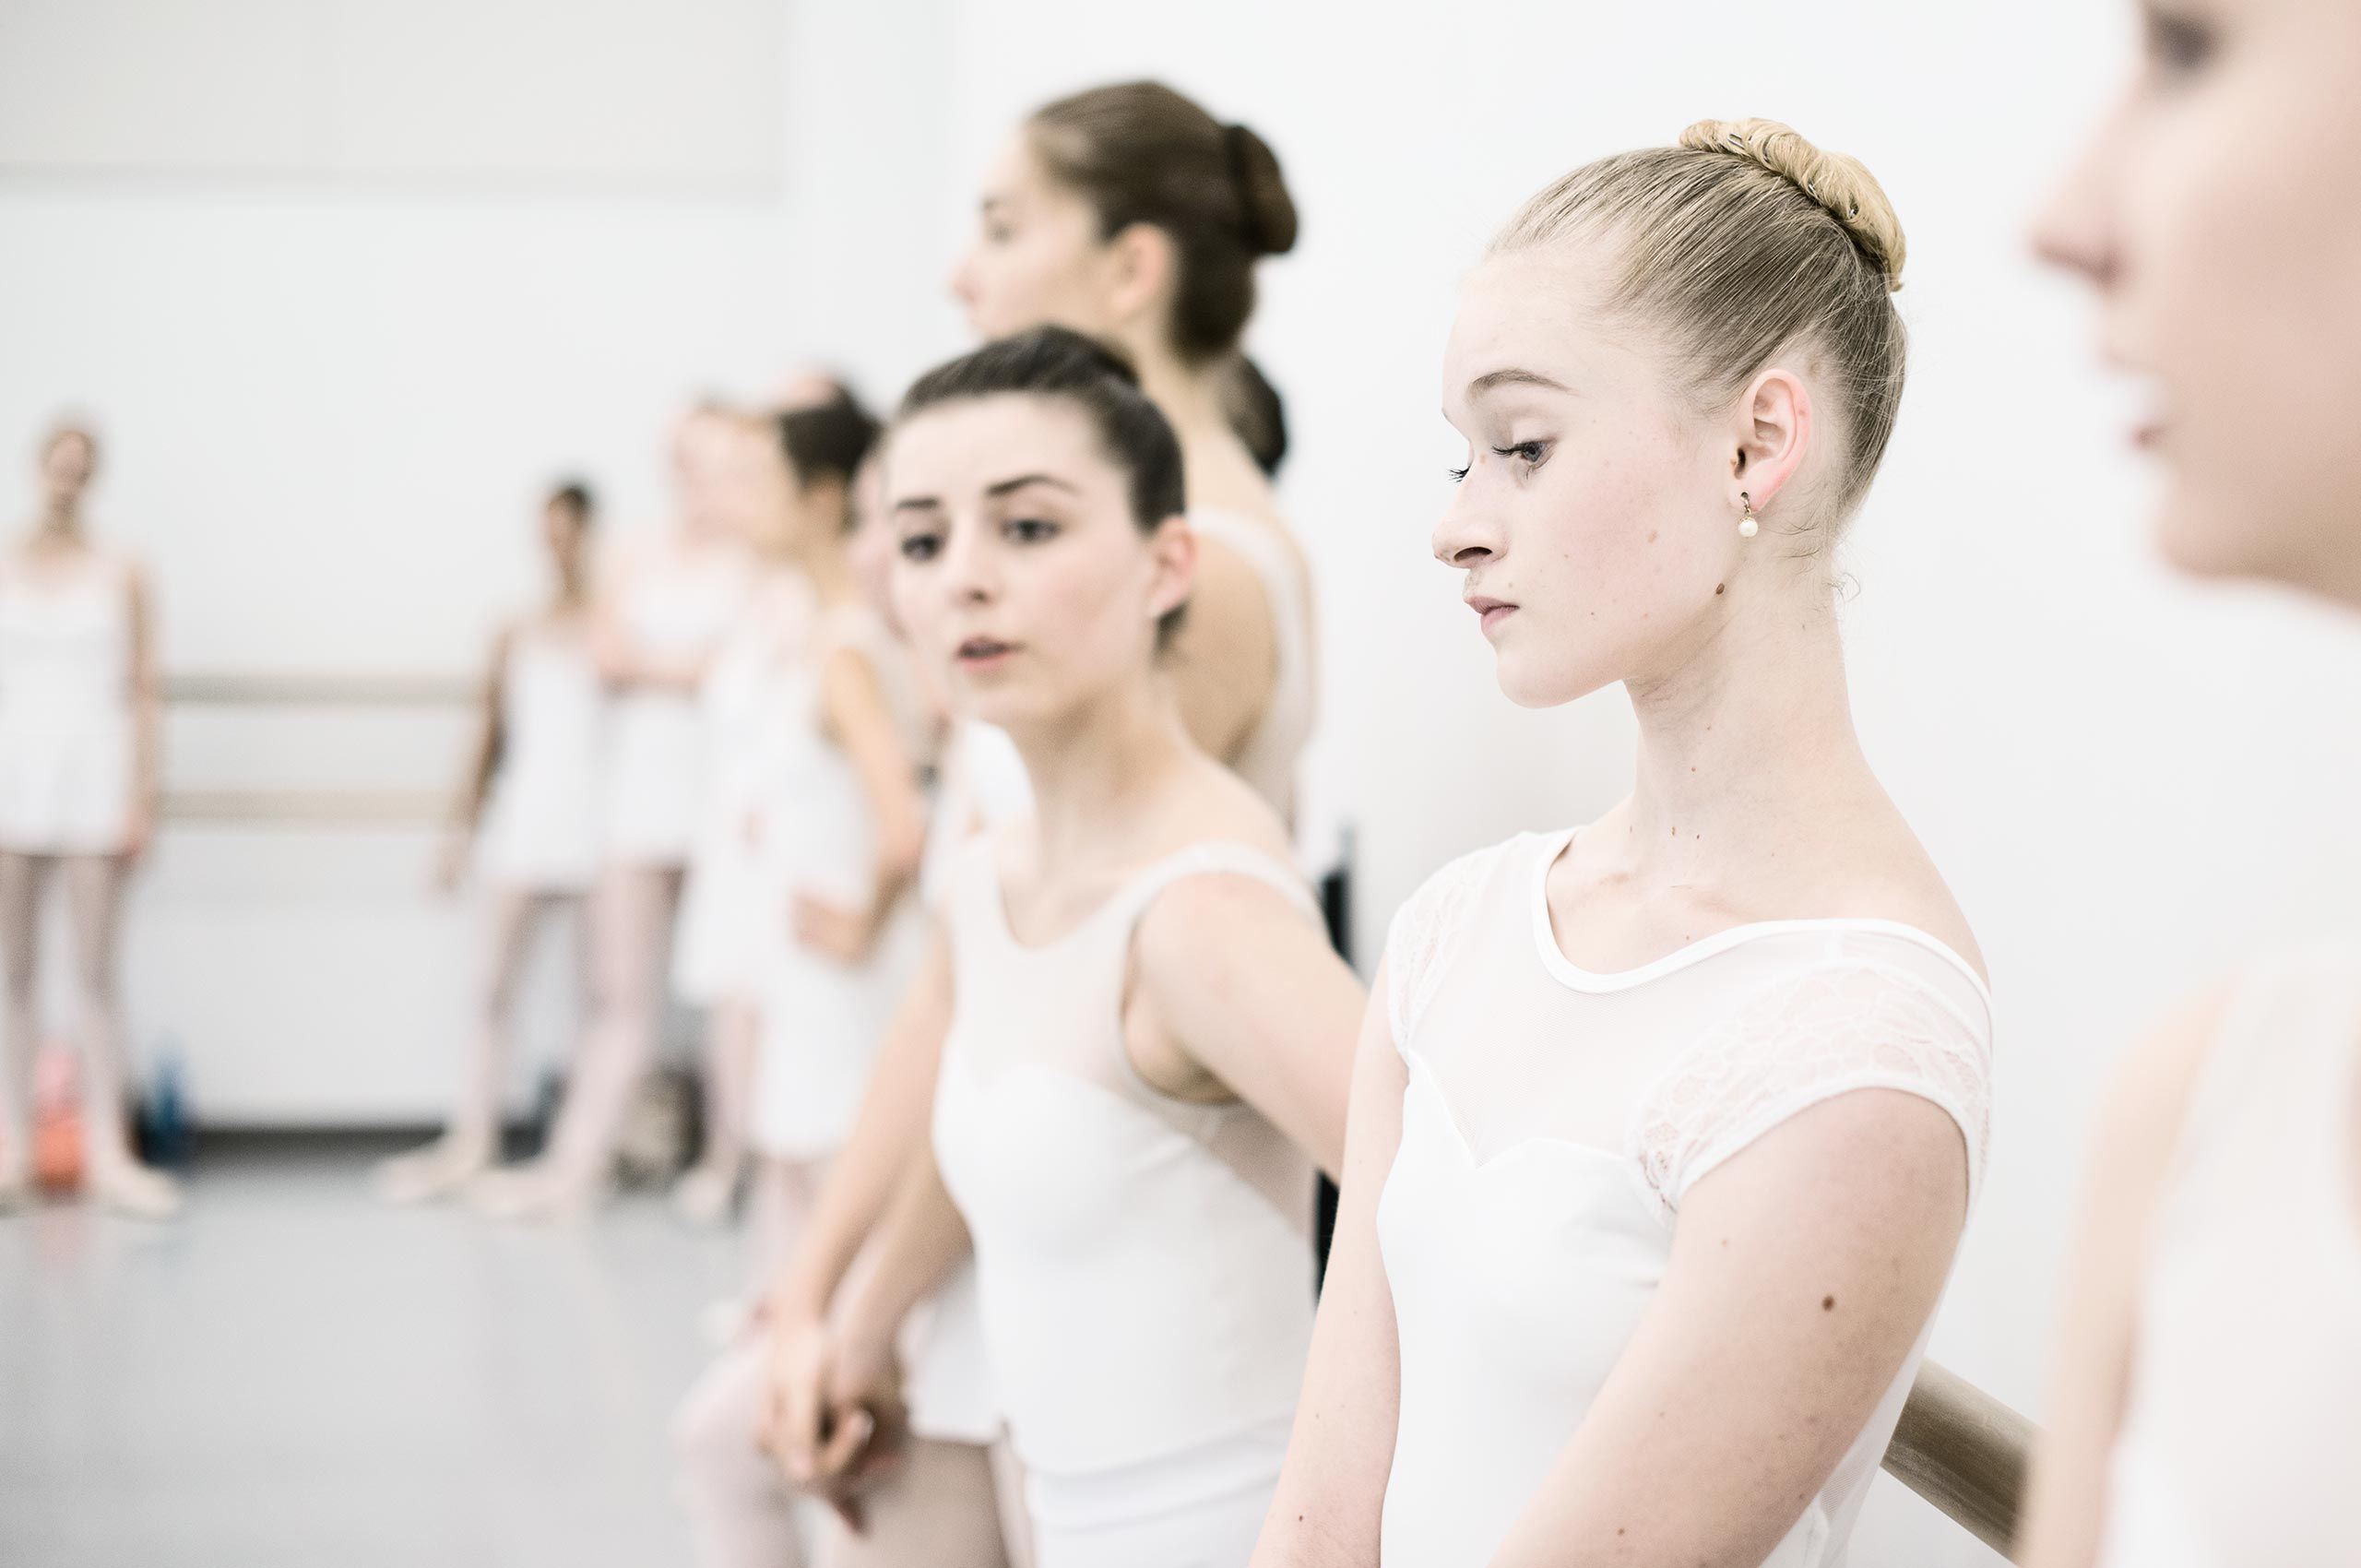 ballerinas-waiting-HenrikOlundPhotography.jpg